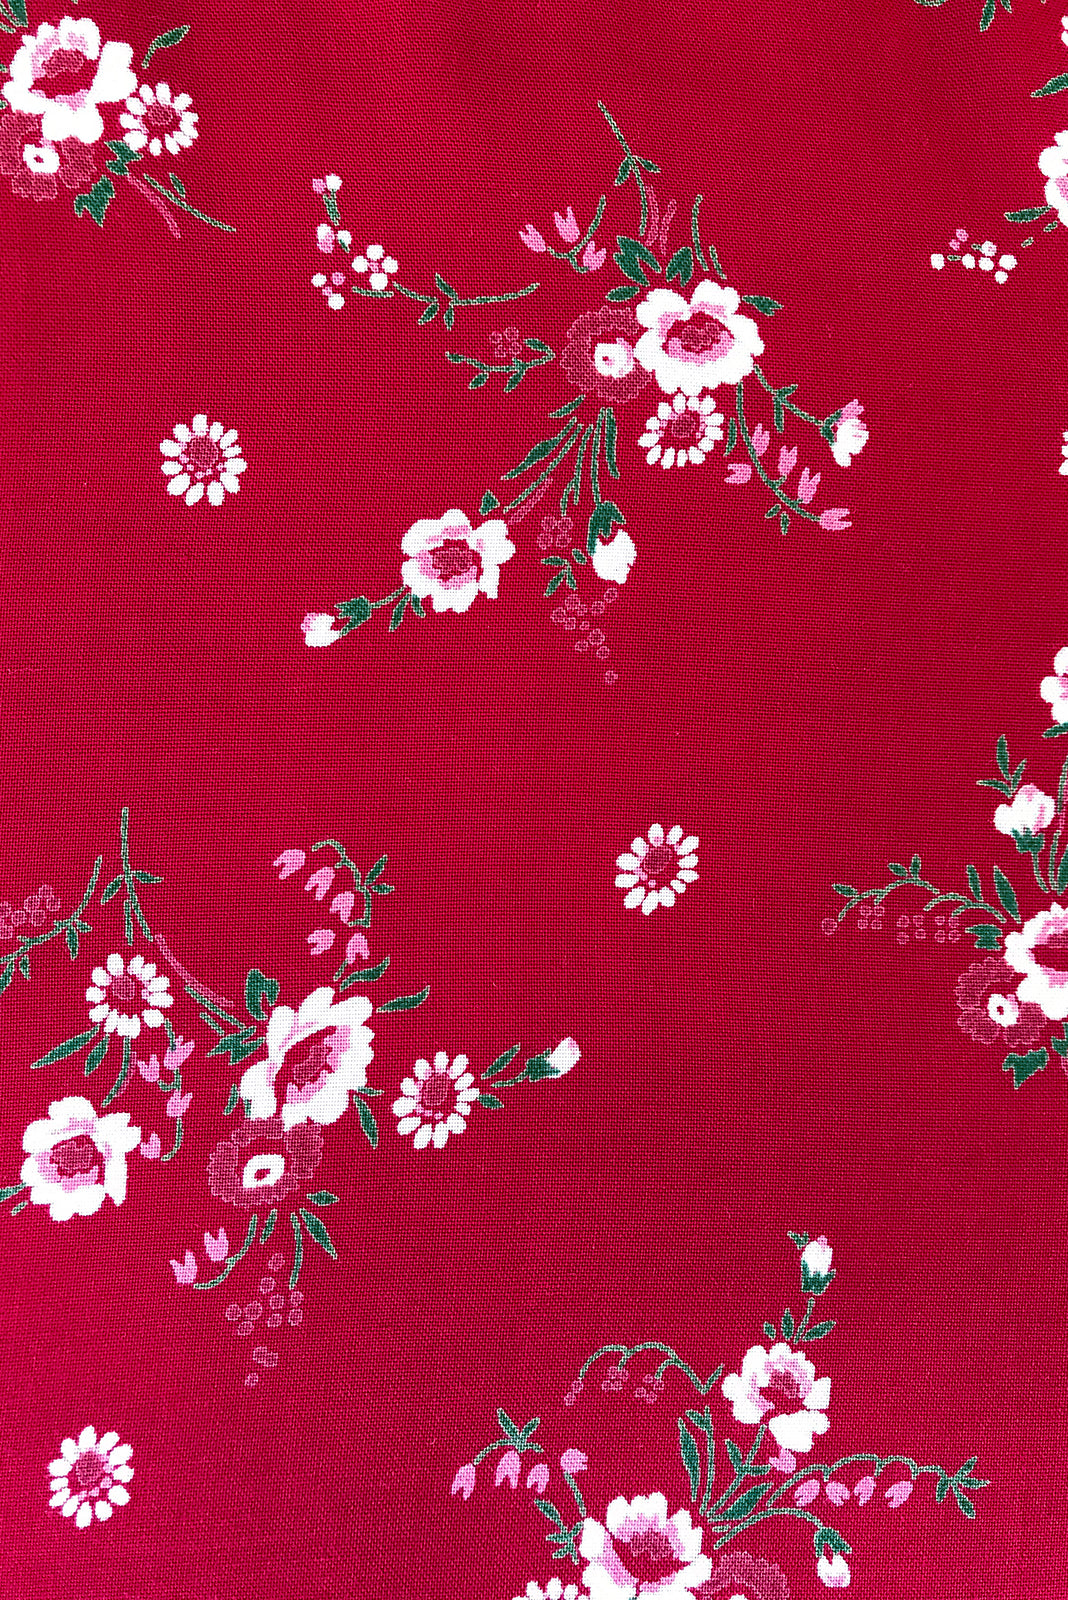 Fabric Swatch of Adoro Cherry Red Maxi Dress featuring 100% rayon in rich red base scattered with a sweet, little floral print.